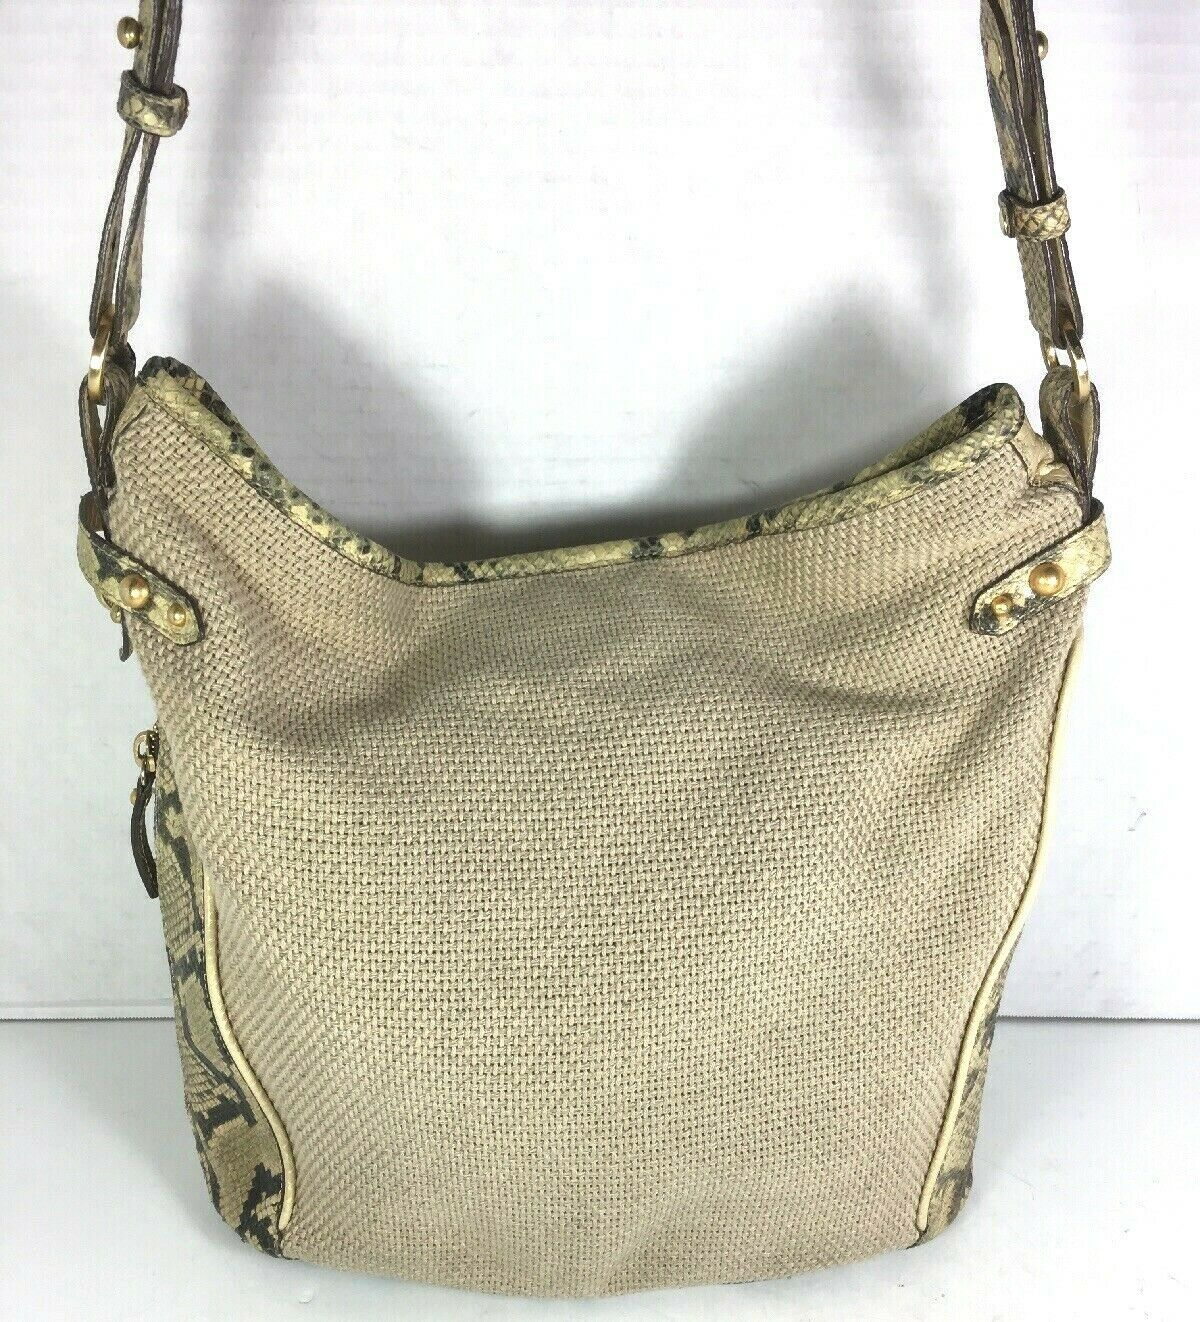 Primary image for Brahmin Beige Fabric and Reptile Print Trim Shoulder Bag- Well Worn